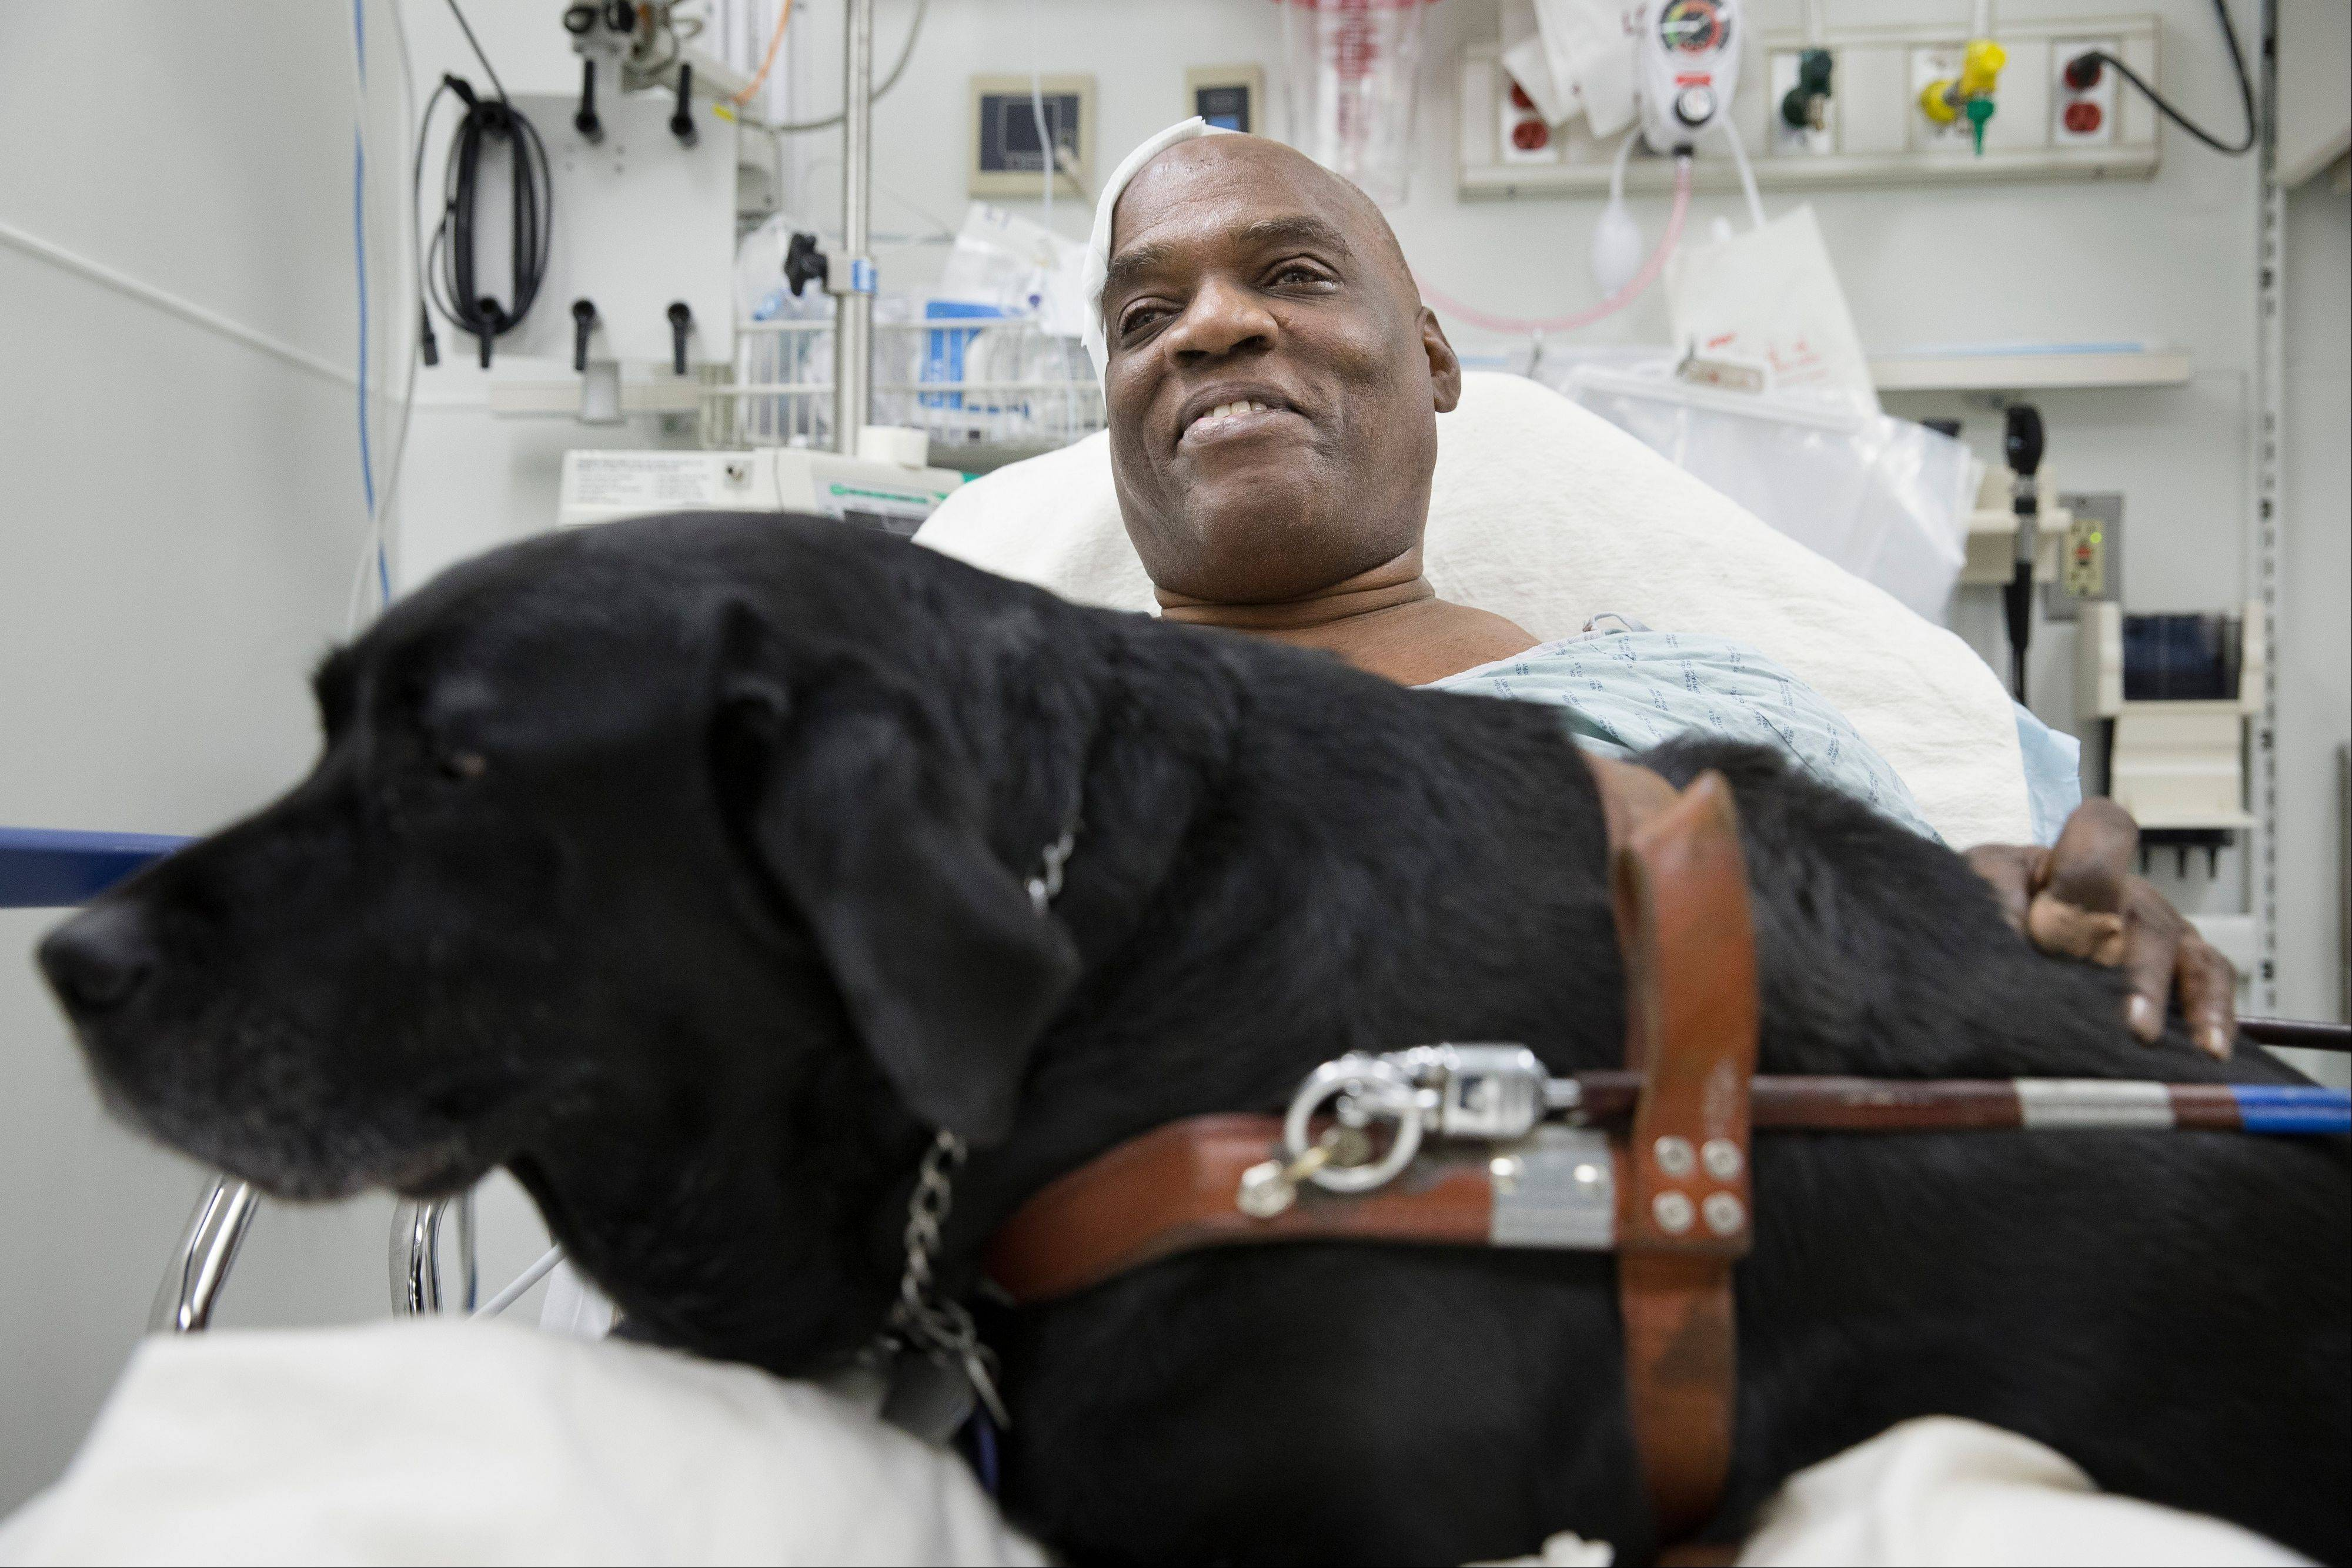 Cecil Williams smiles Tuesday as he pets guide dog Orlando in his hospital bed following a fall onto subway tracks from the platform at 145th Street in New York. The blind 61-year-old Williams says he fainted while holding onto his black labrador who tried to save him from falling. Both escaped without serious injury.